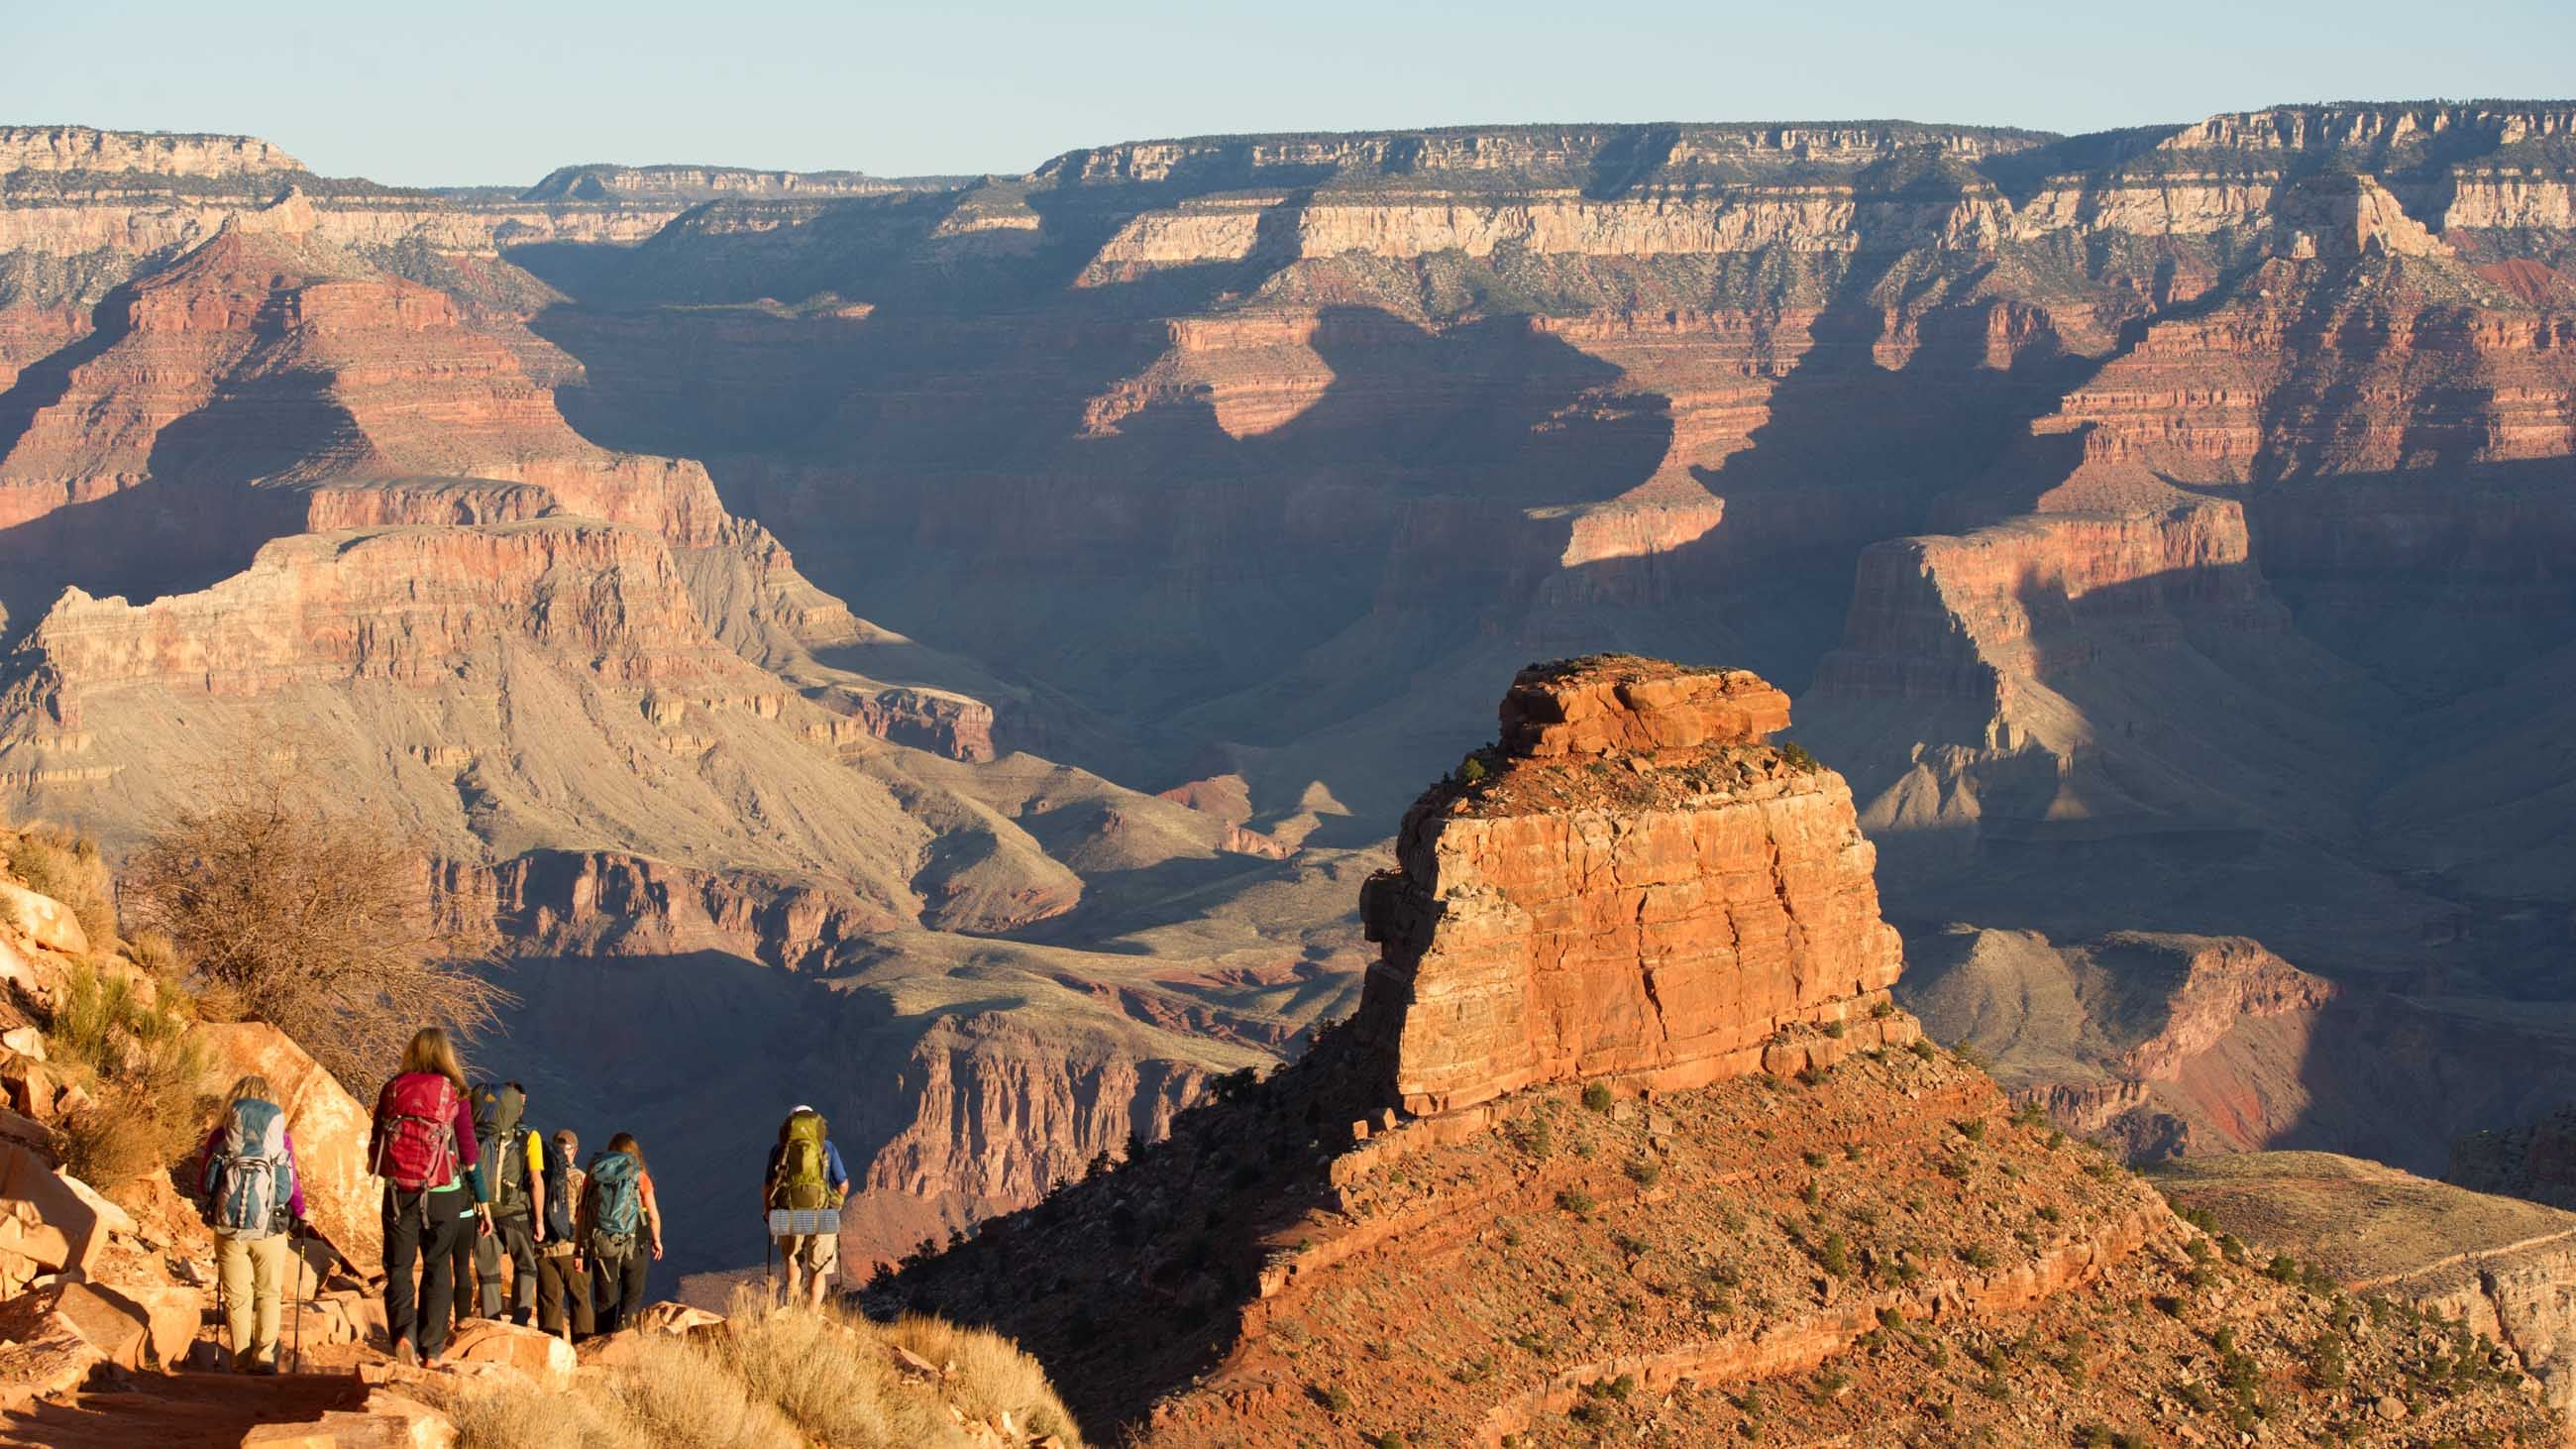 Hikers descend into Grand Canyon valley on backpacking trip